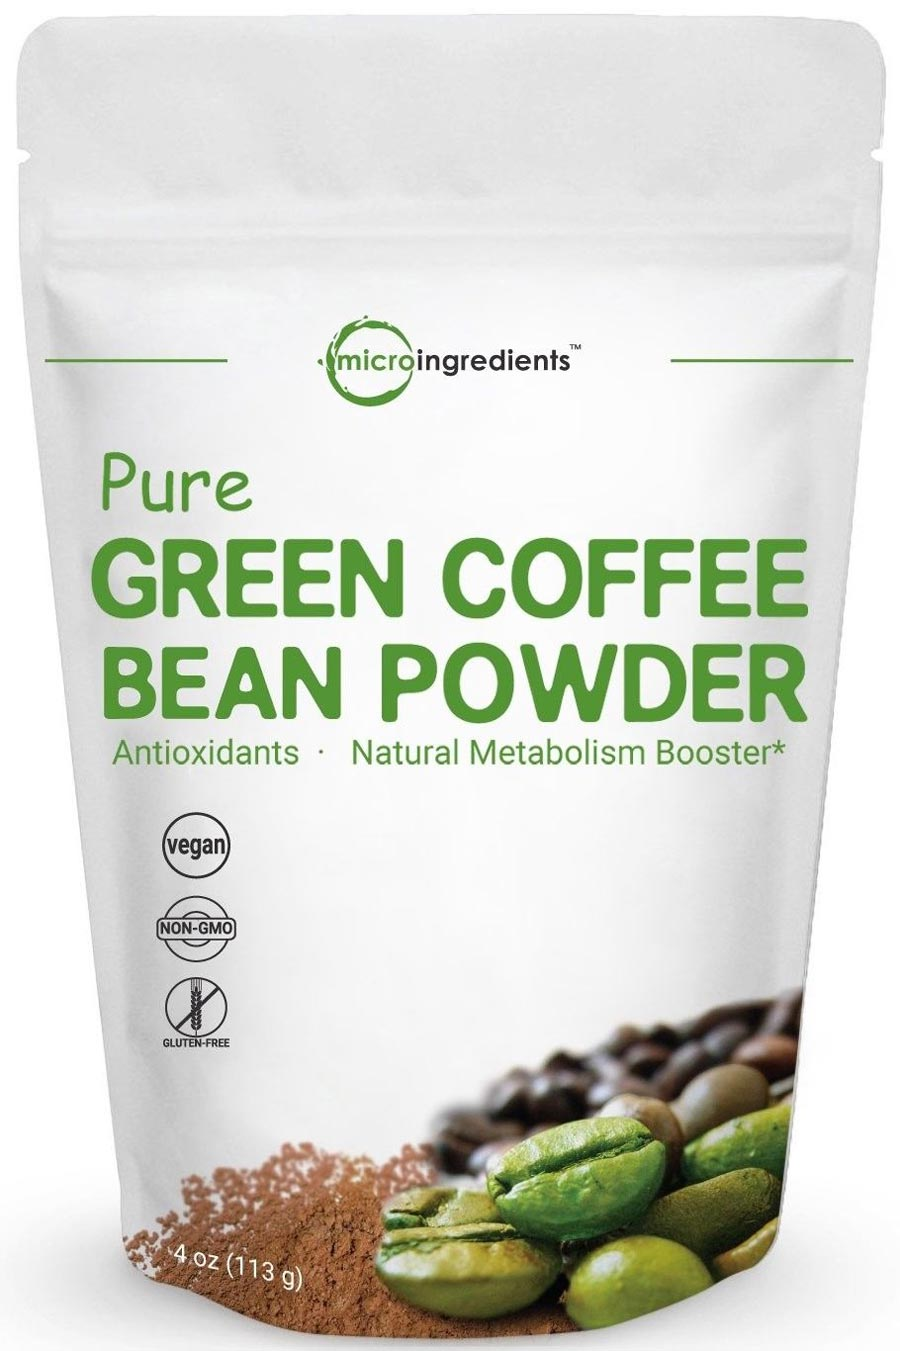 Image of a package of Micro Ingredients Pure Green Coffee Bean Powder